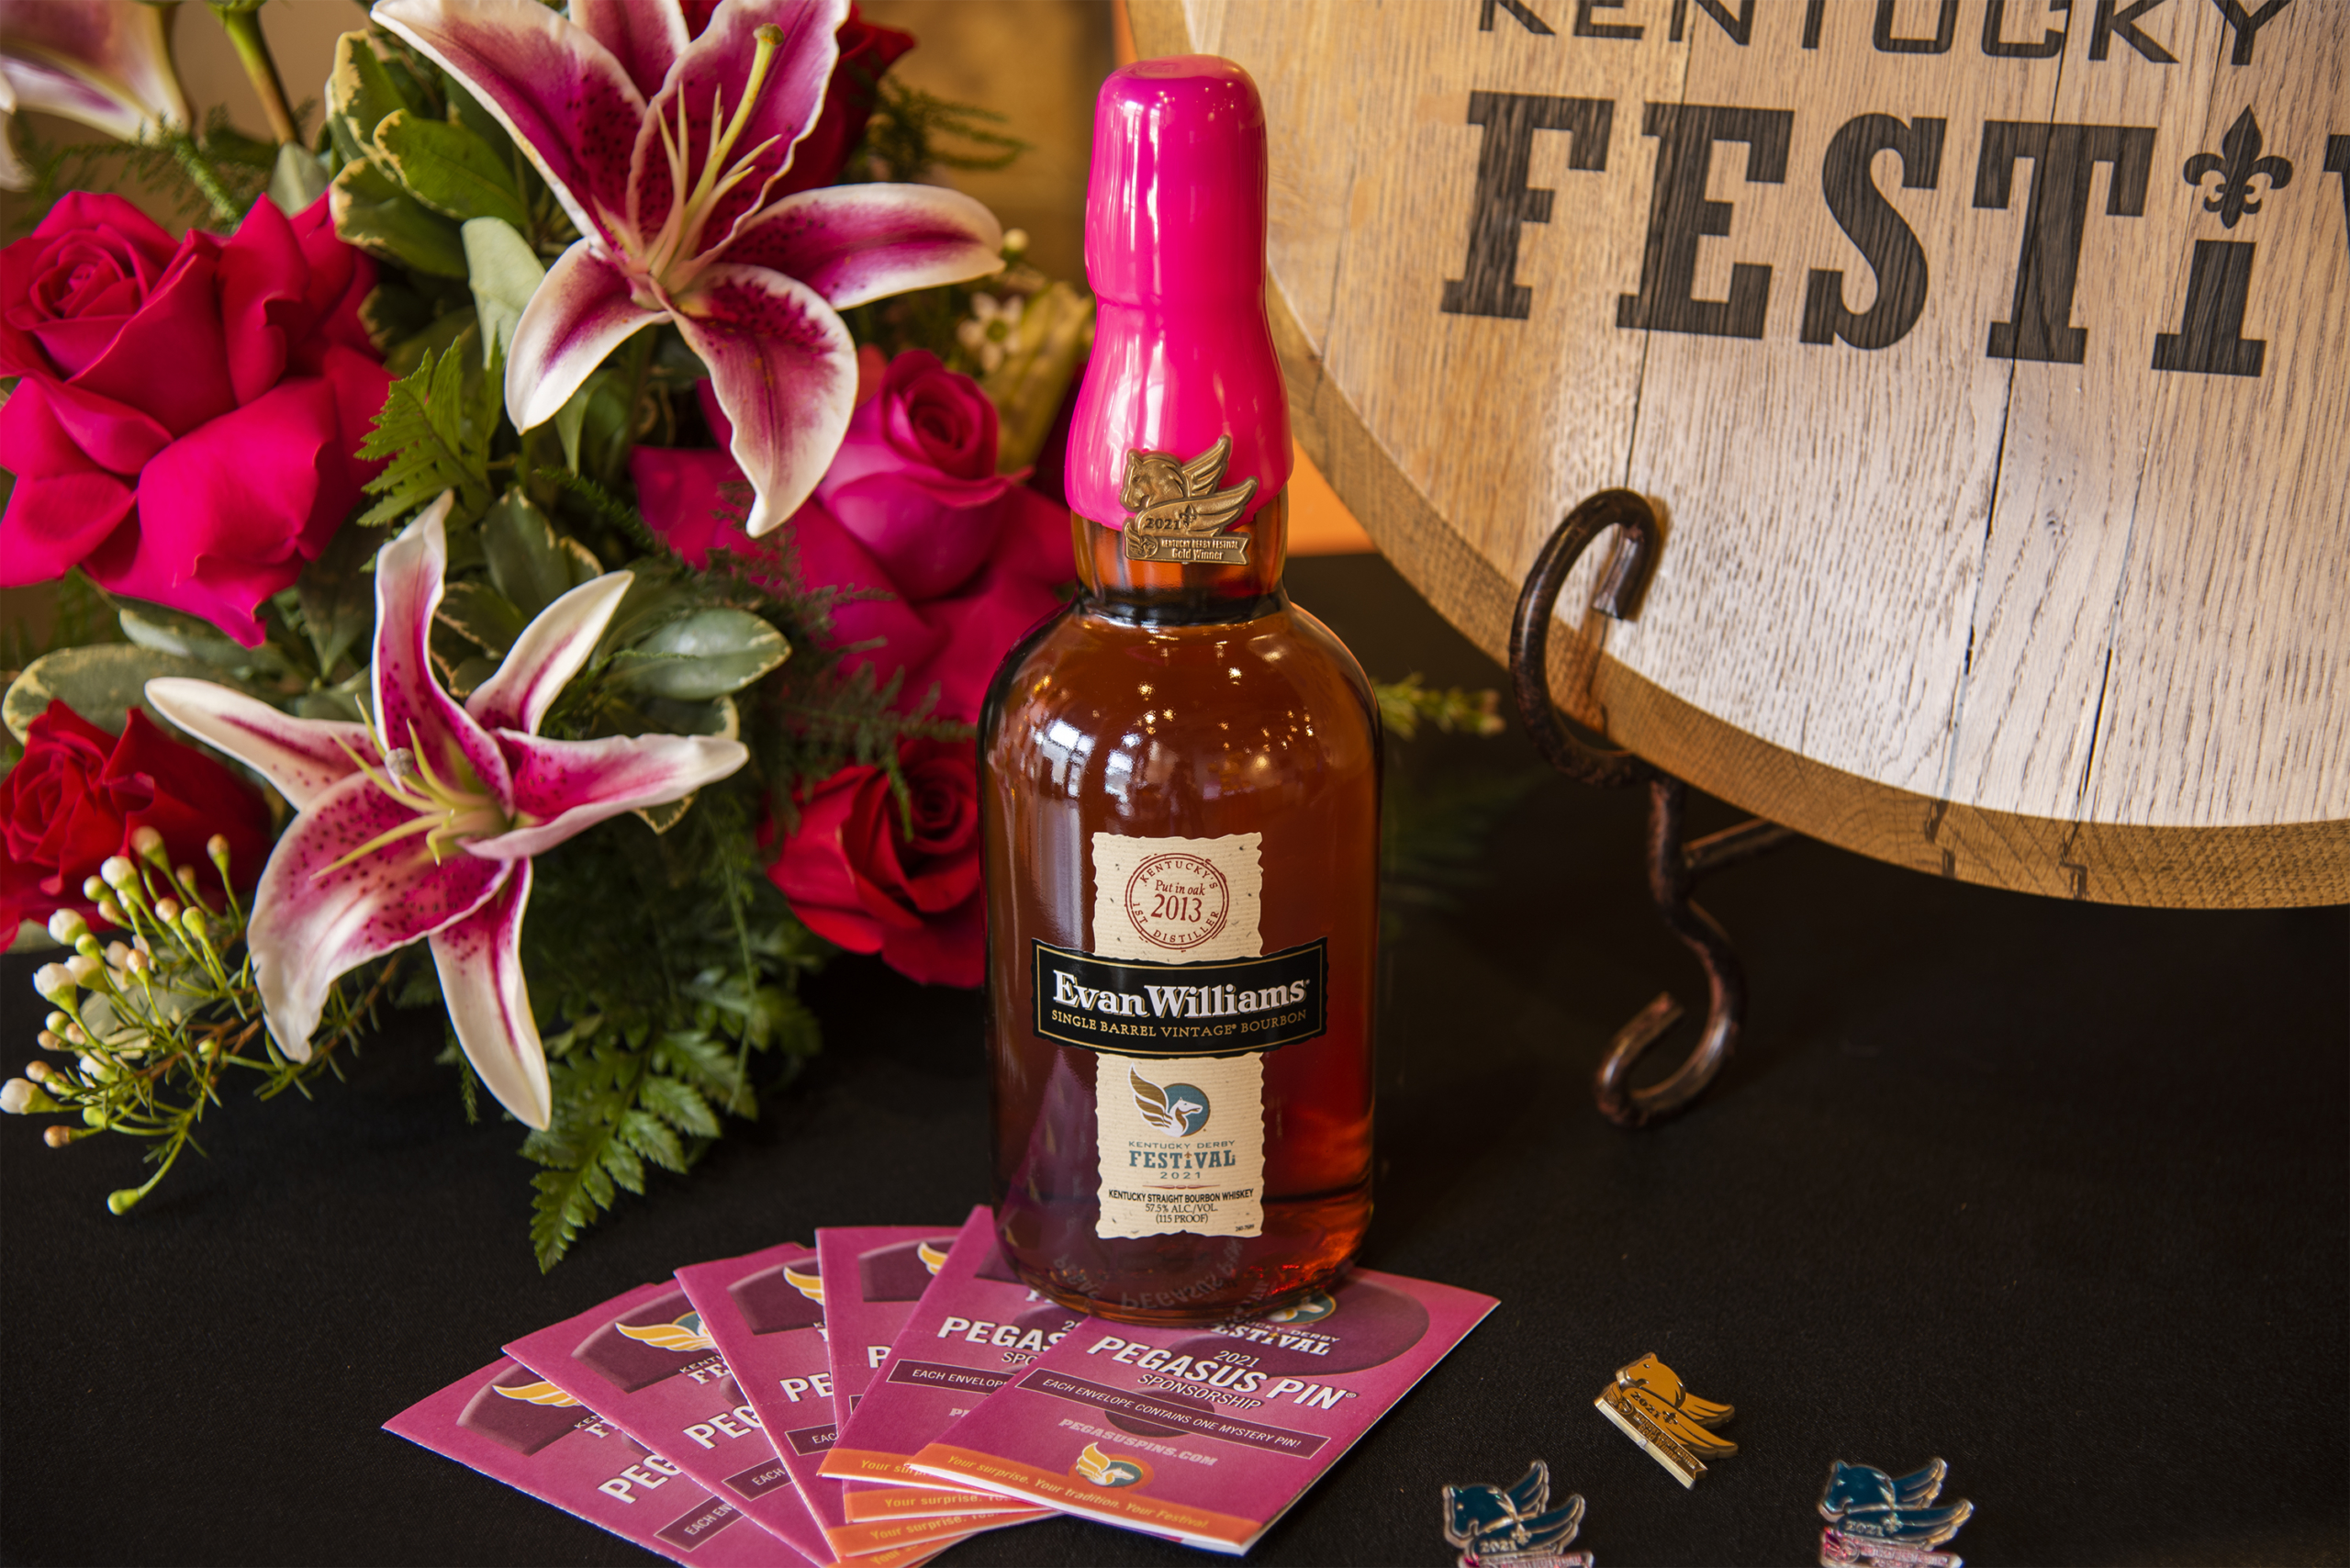 HHB 1710 scaled - Evan Williams Bourbon Experience Releases Annual Limited-Edition Kentucky Derby Festival Bourbon Bottle